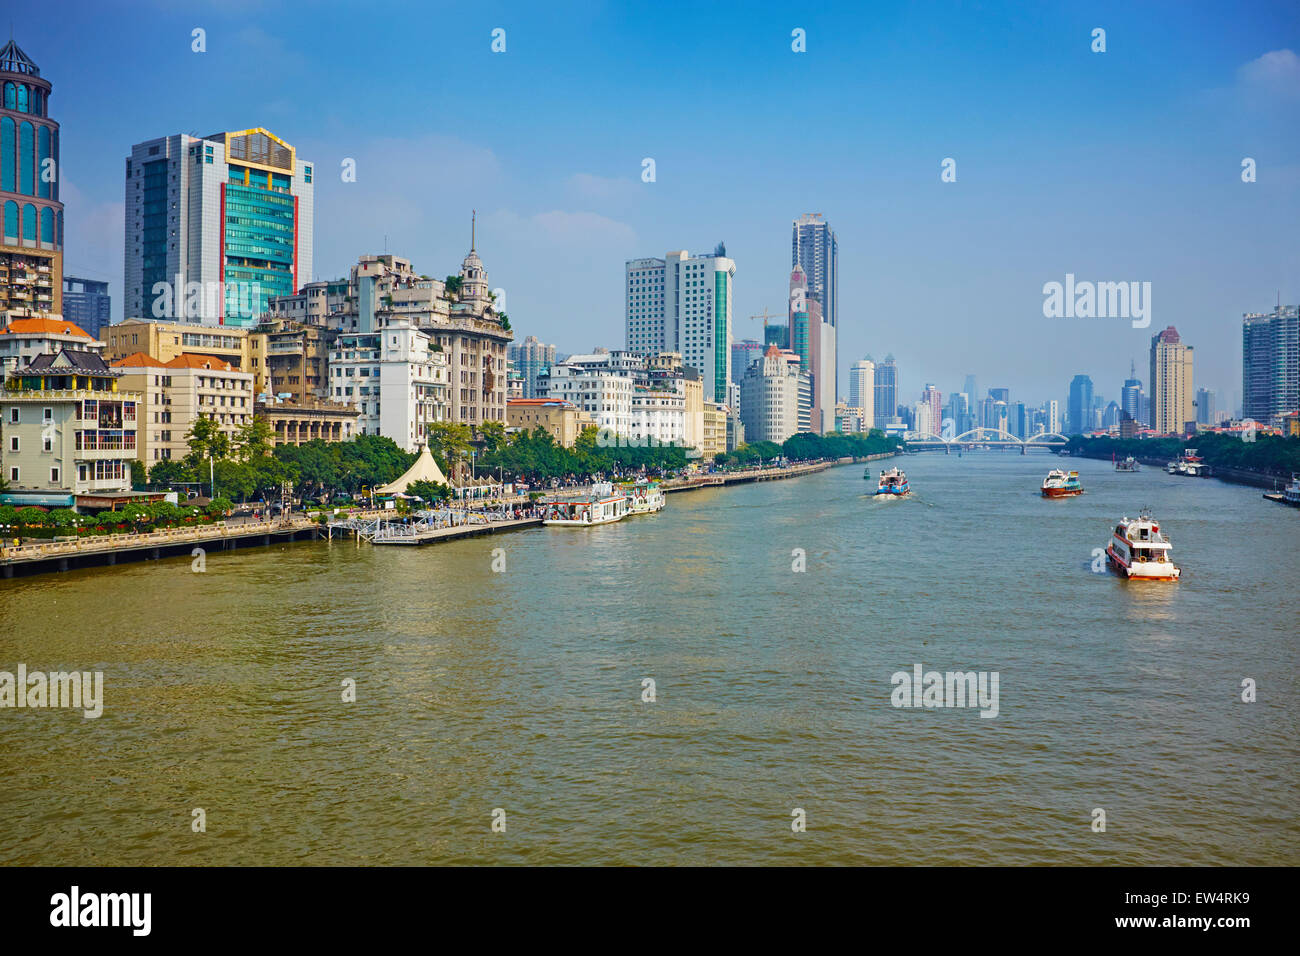 China, Guangdong province, Guangzhou or Canton, city center, the pearl river or Zhujiang river - Stock Image